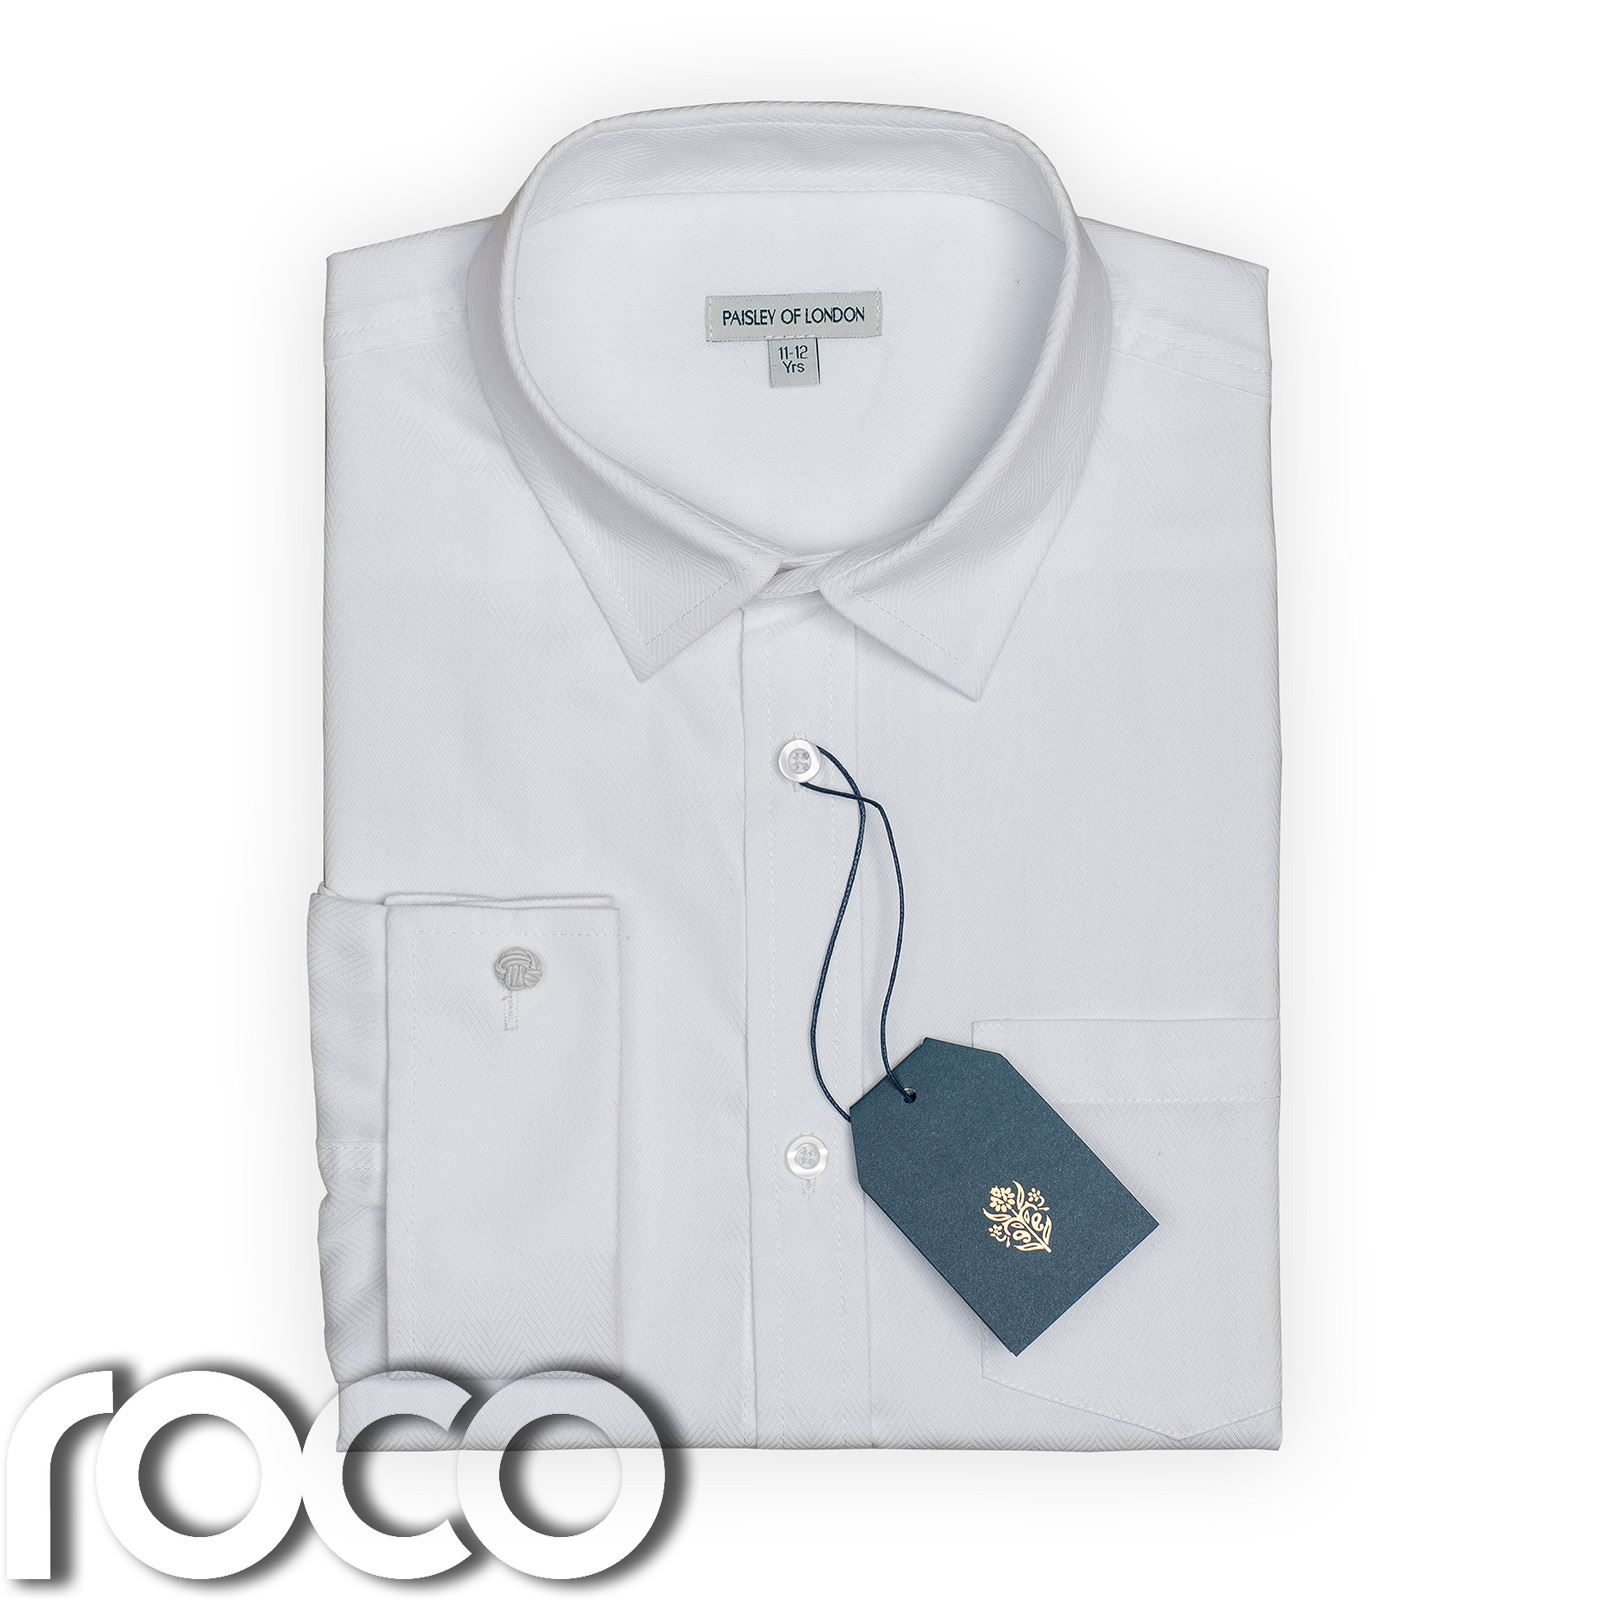 Boys white cufflink shirt boys formal shirts boys for Boys white formal shirt